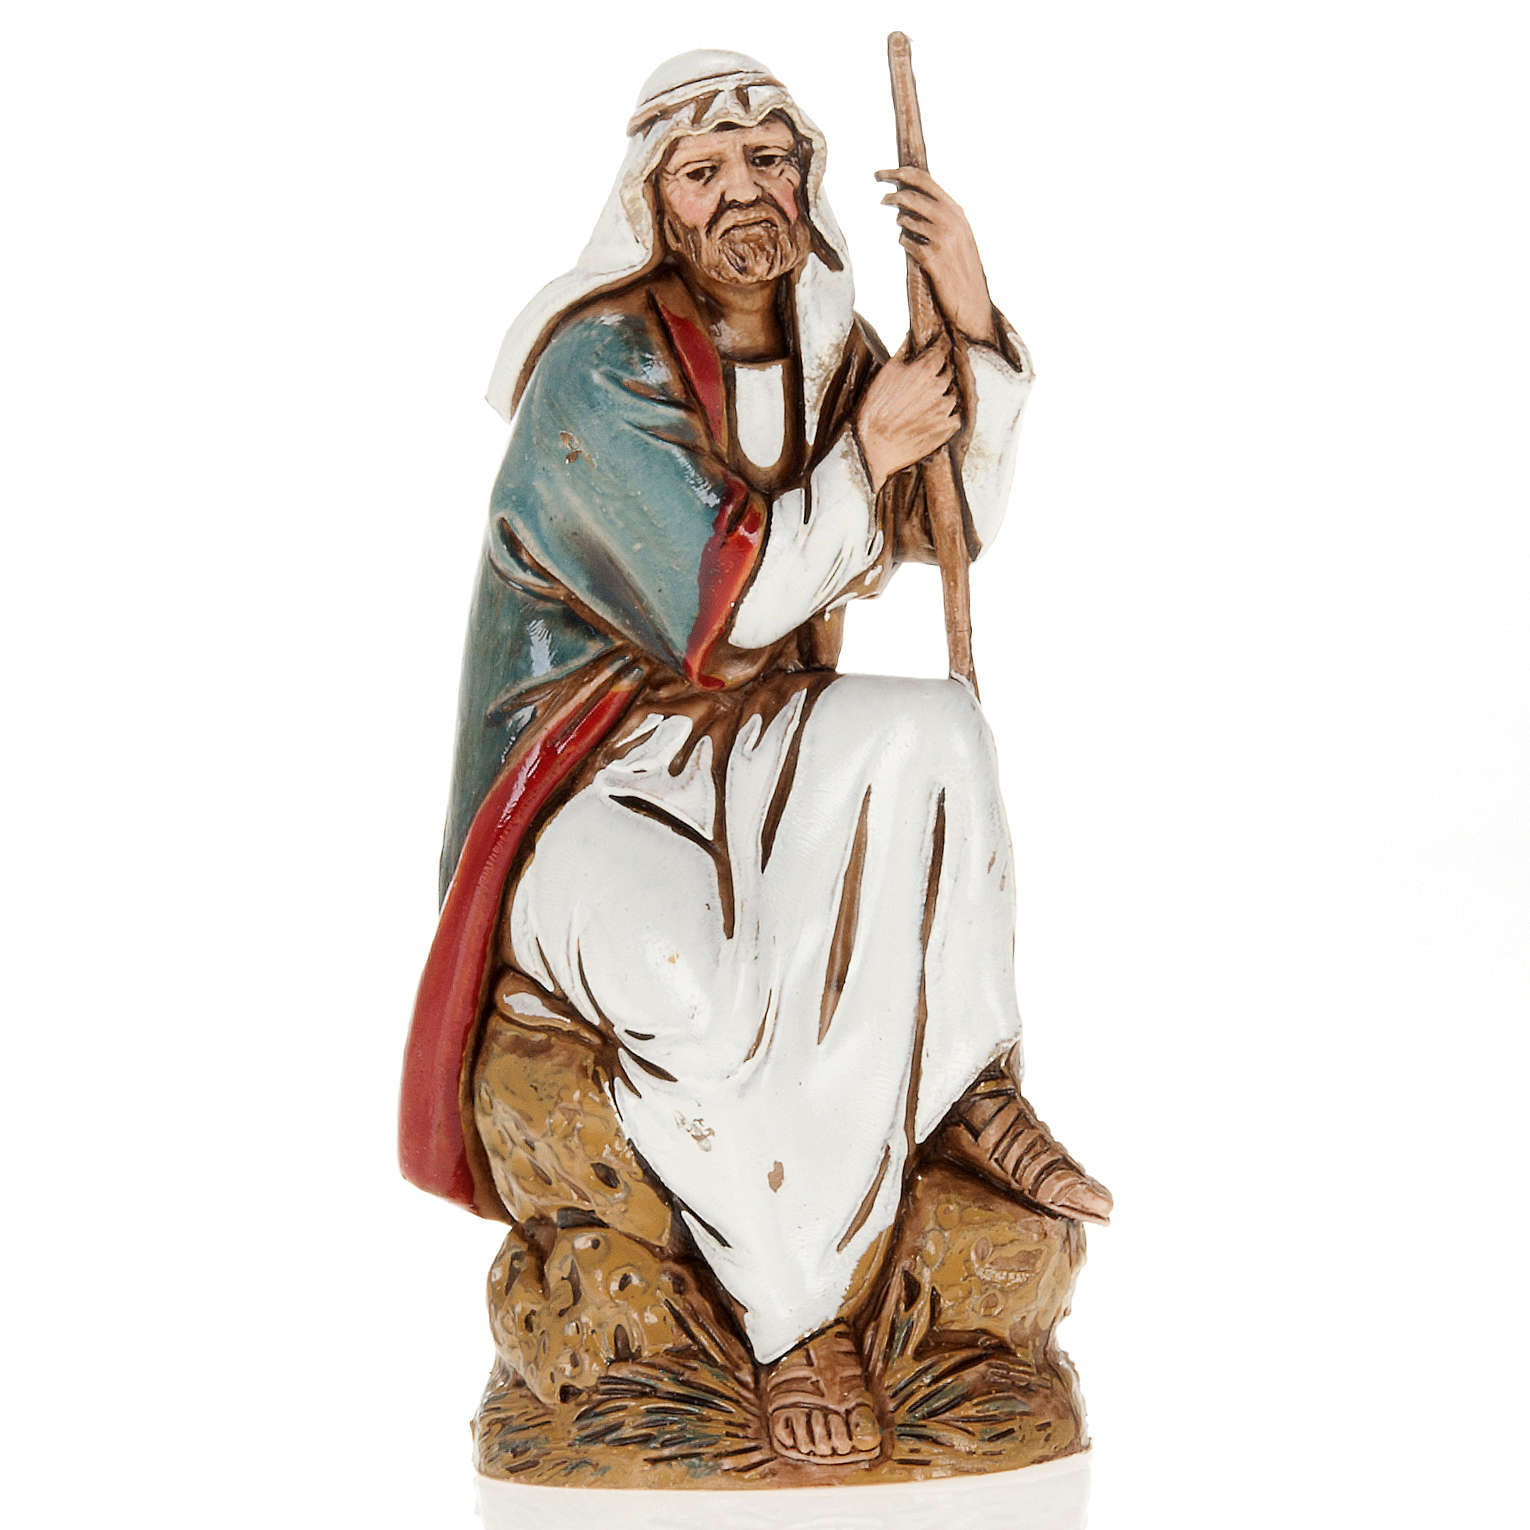 Old shepherd with walking stick, nativity figurine, 10cm Moranduzzo 3